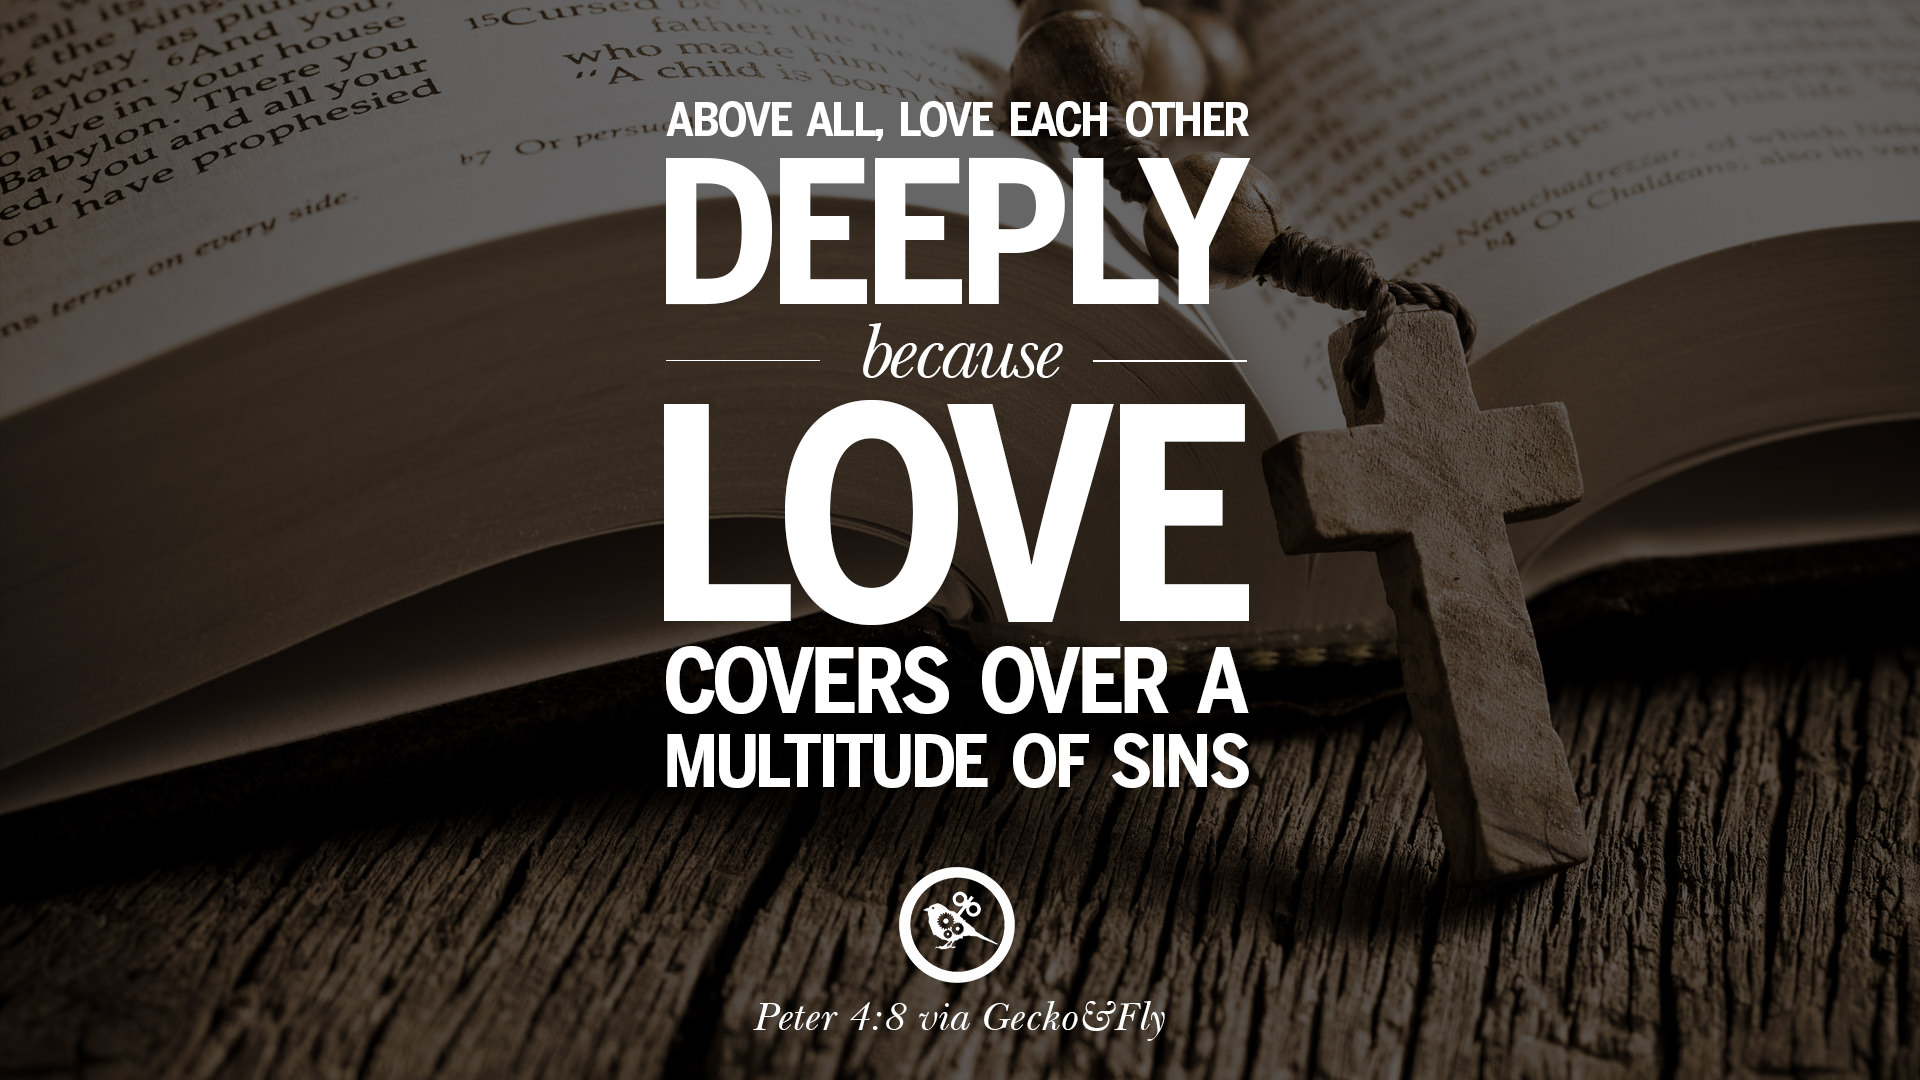 7 Bible Verses About Love Relationships, Marriage, Family